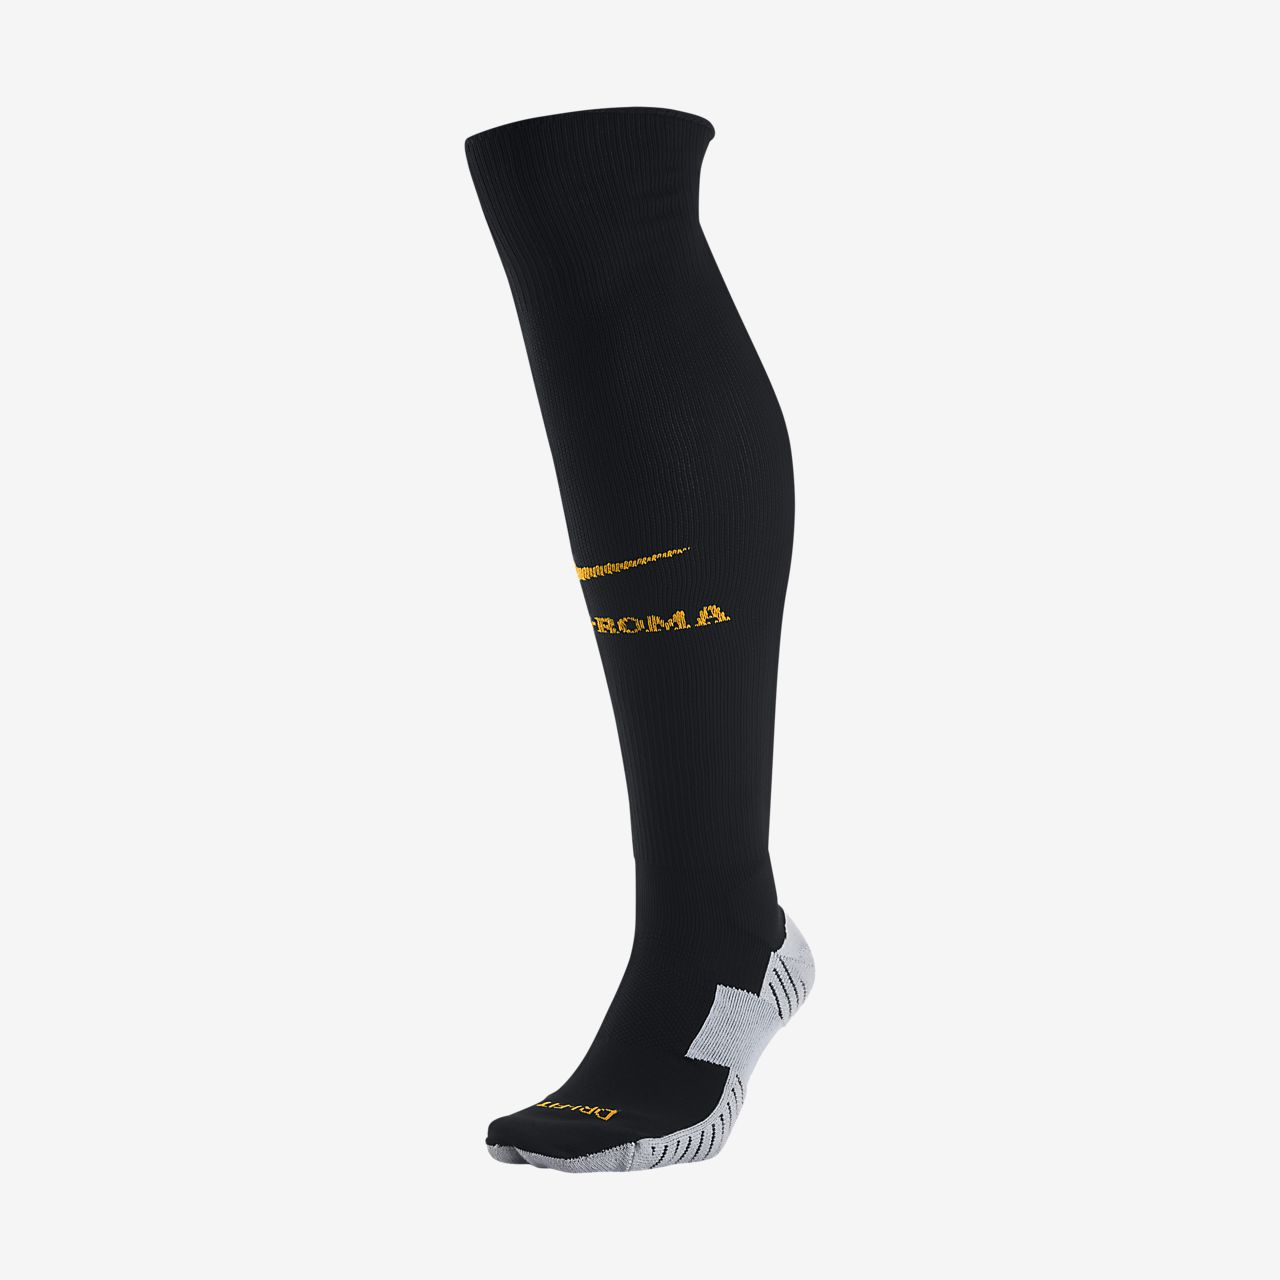 2017/18 A.S. Roma Stadium Home/Away/Third Football Socks